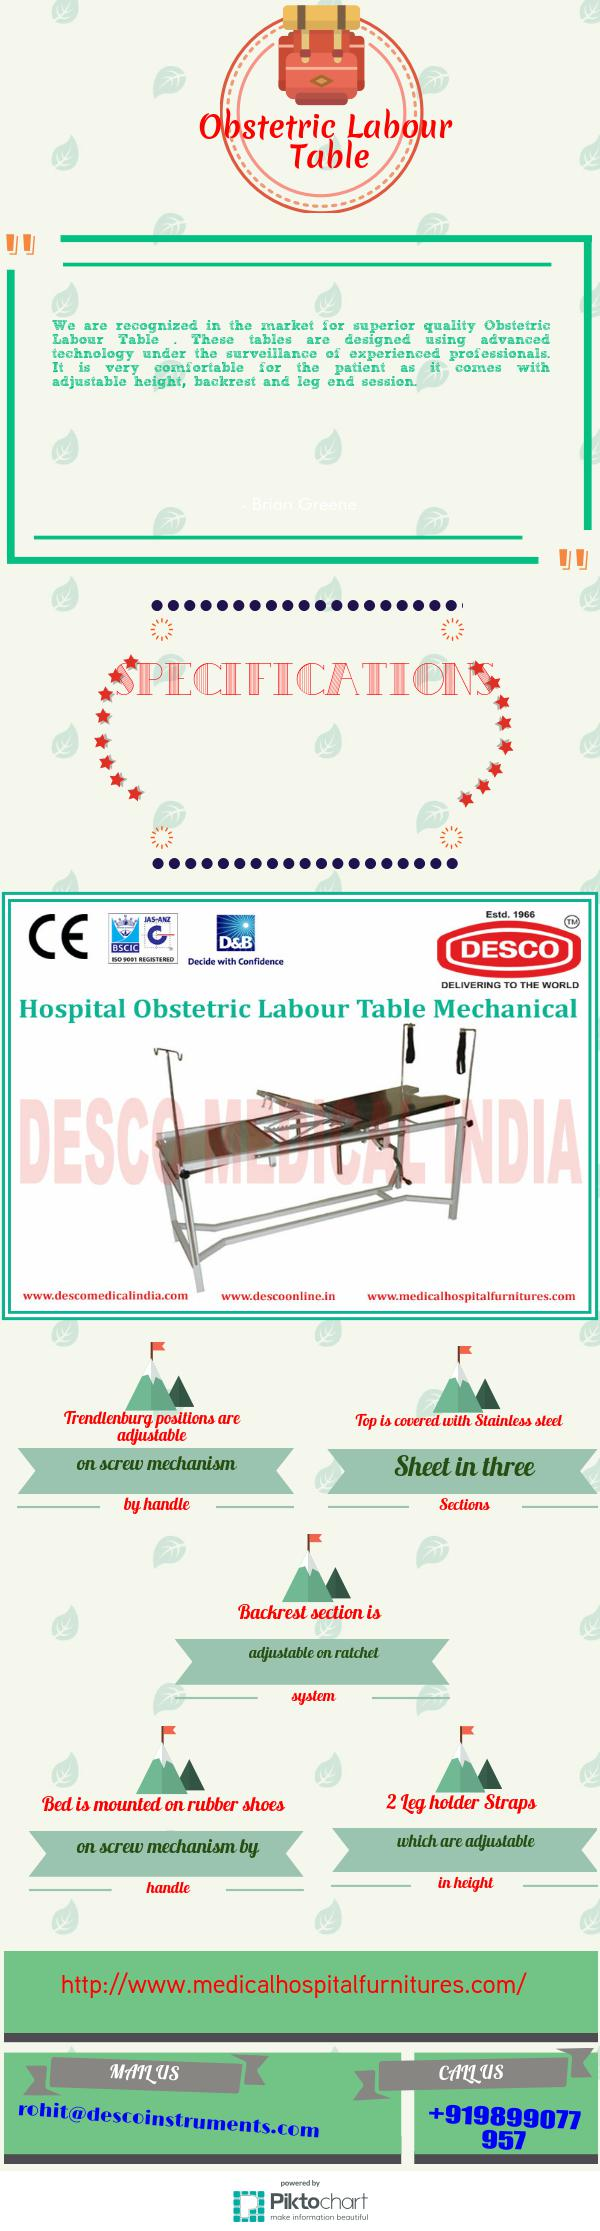 We are recognized in the market for superior quality Obstetric Labour Table . These tables are designed using advanced technology under the surveillance of experienced professionals. It is very comfortable for the patient as it comes with adjustable height, backrest and leg end session.